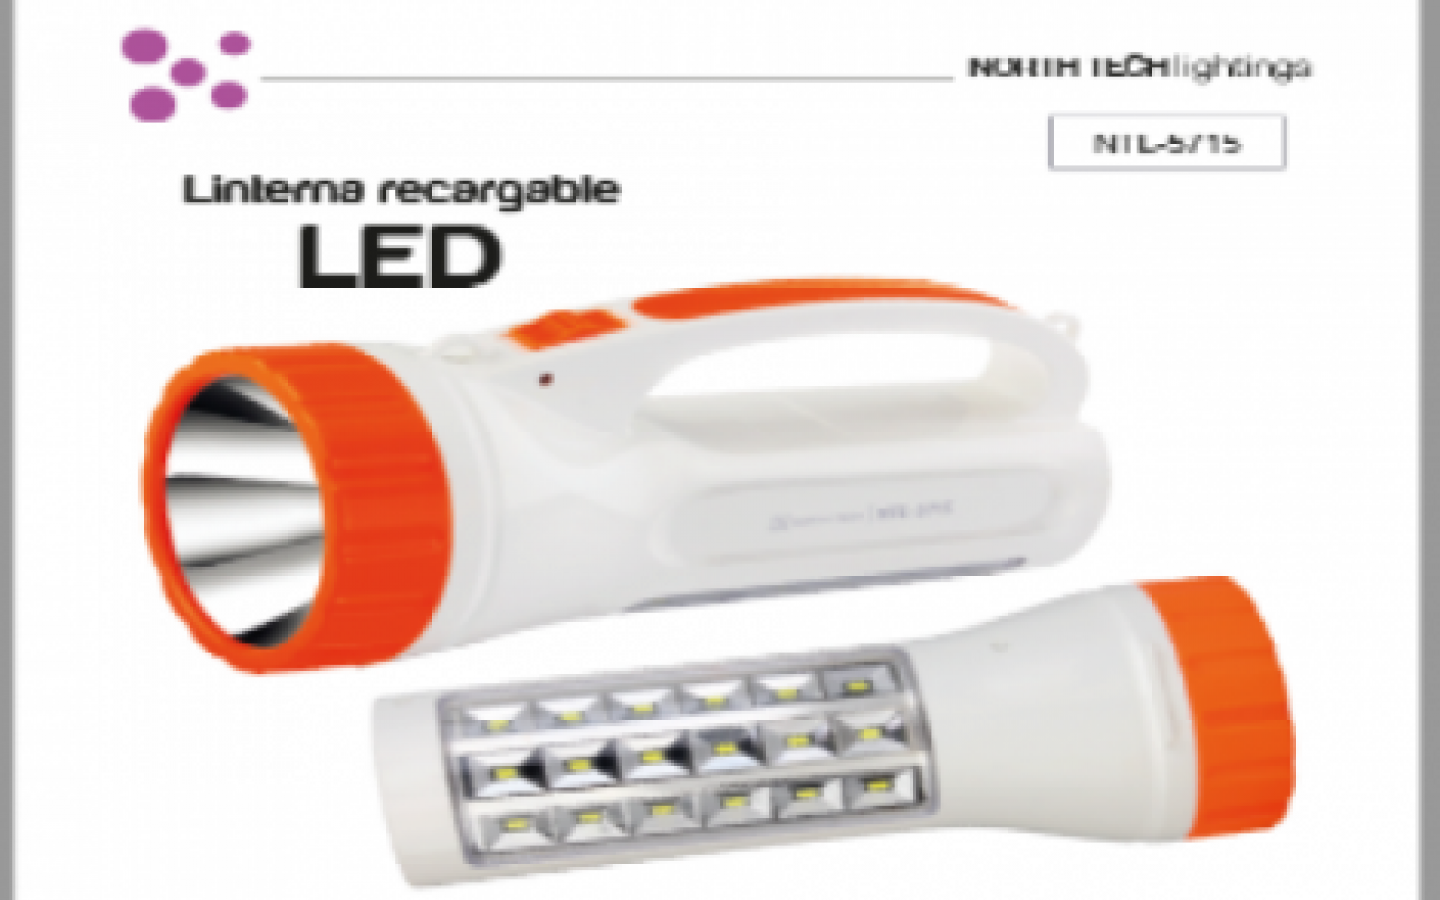 Linterna LED North Tech RECARGABLE  NTL-5715